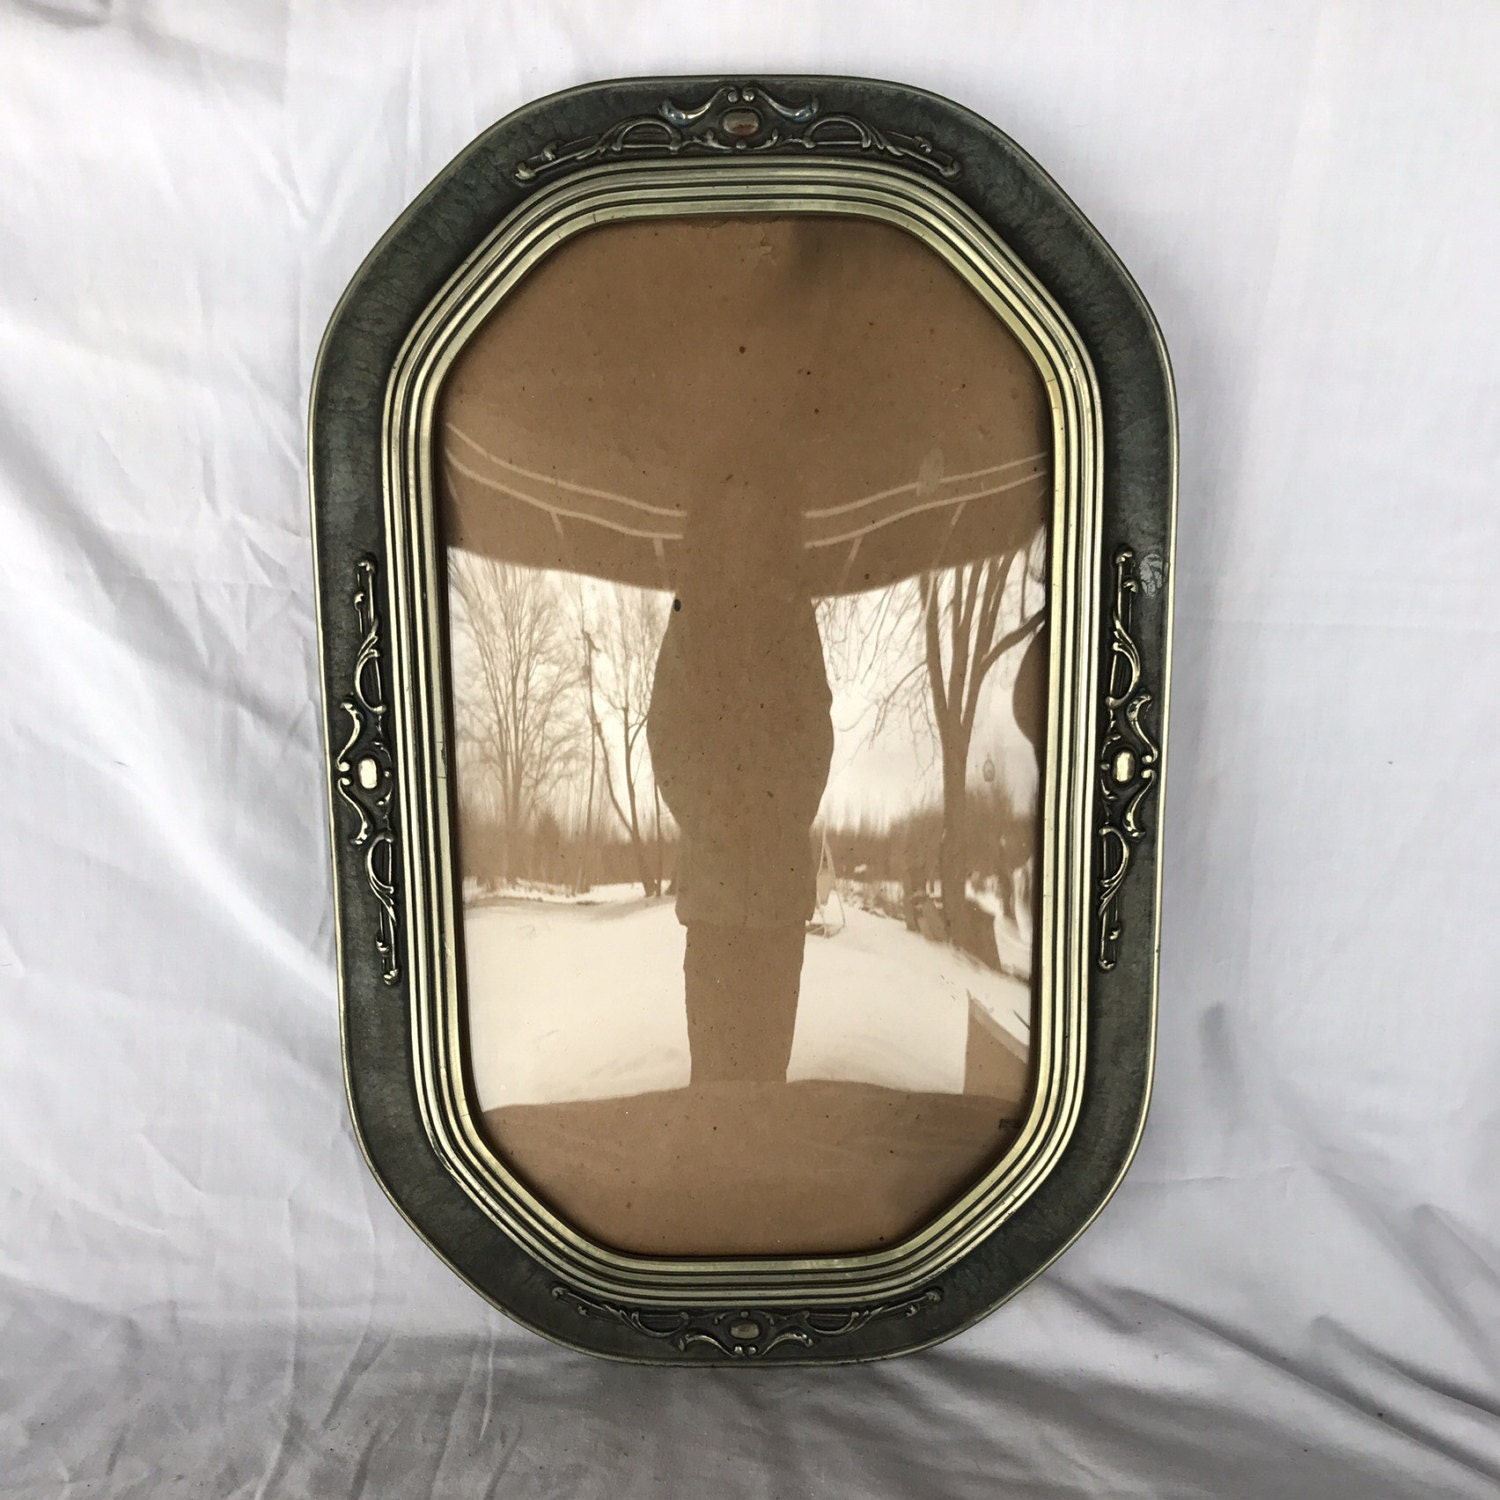 Convex frame antique convex glass bubble glass frame vintage sold by toesinthepond jeuxipadfo Image collections